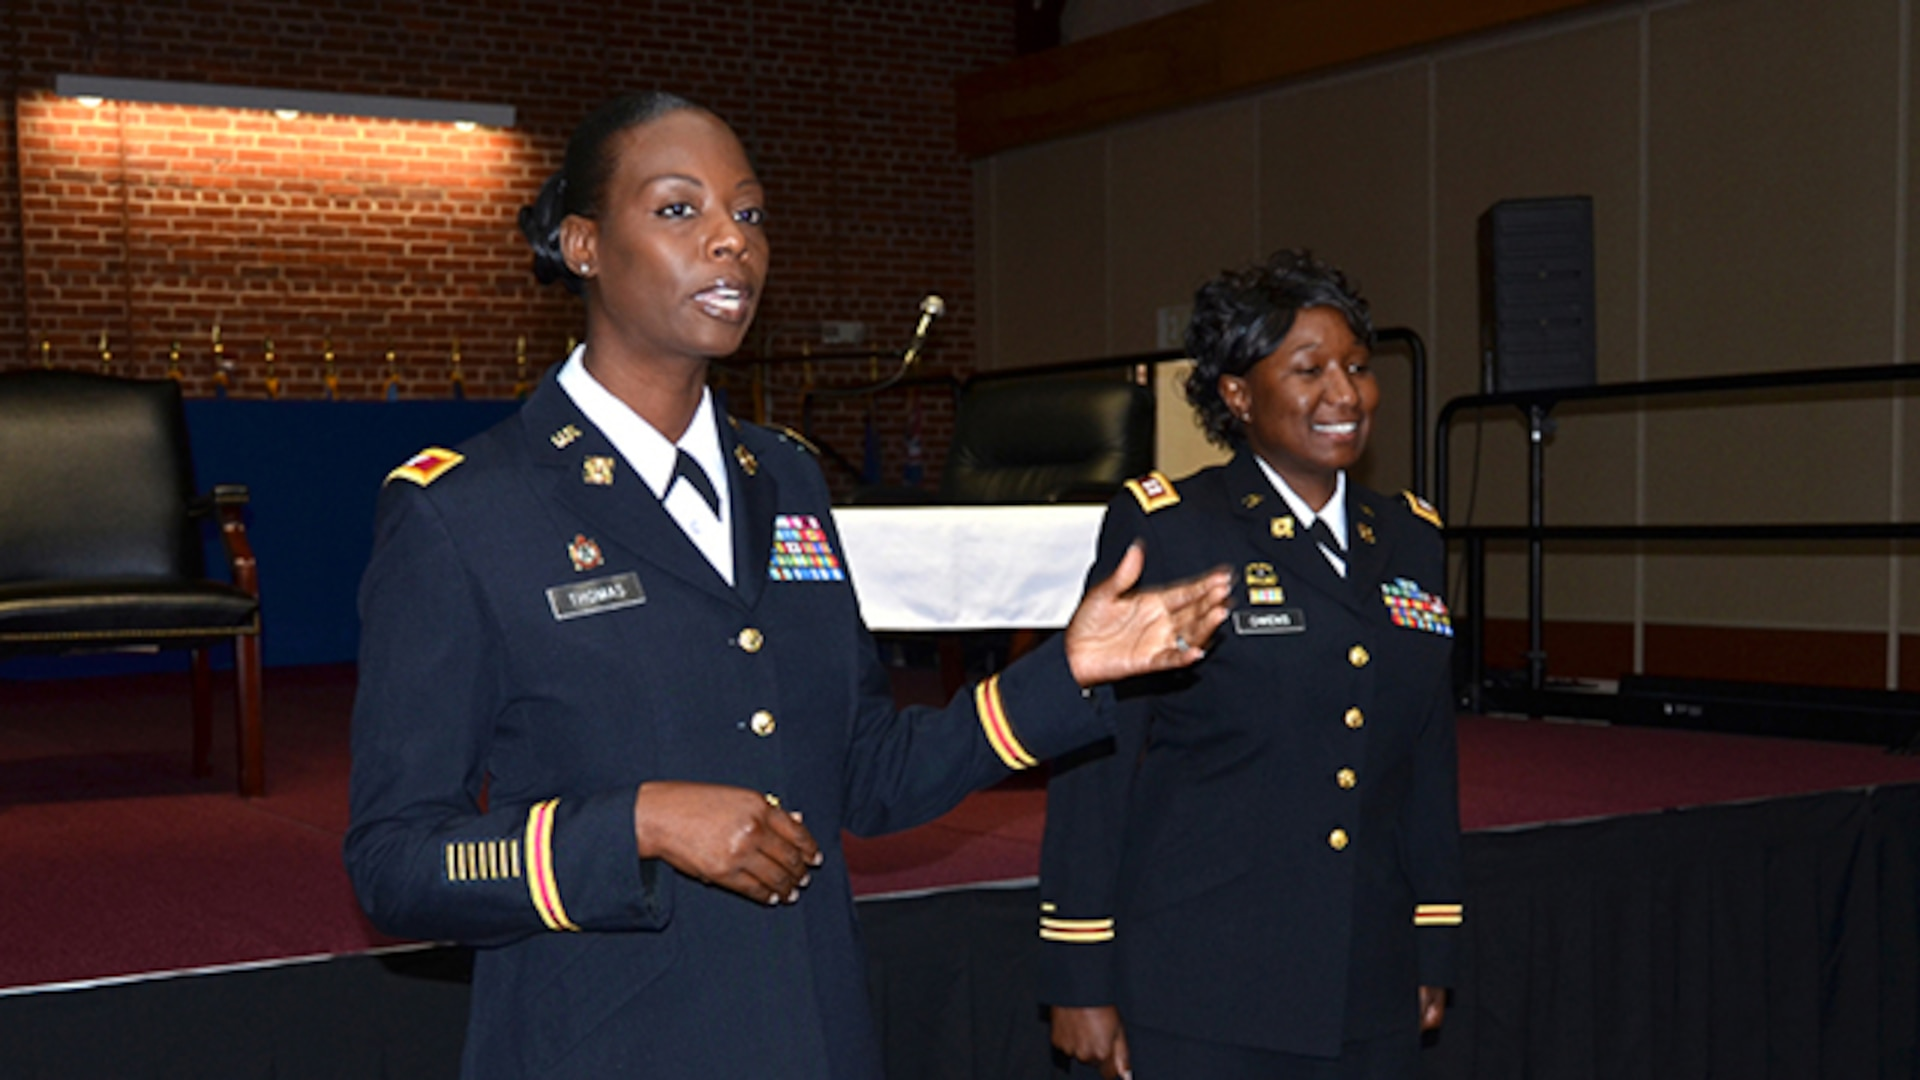 During the Women's Equality Day celebration on Defense Supply Center Richmond, Virginia, Aug. 31, 2016, Defense Logistics Agency Aviation's Army Col. Kim Thomas, deputy director for Strategic Acquisition Programs Directorate conducts a promotion ceremony for DLA Army Reserve Capt. Delecia Owens to Major. Owens is a contract specialist in Supplier Operations Commodities Directorate.